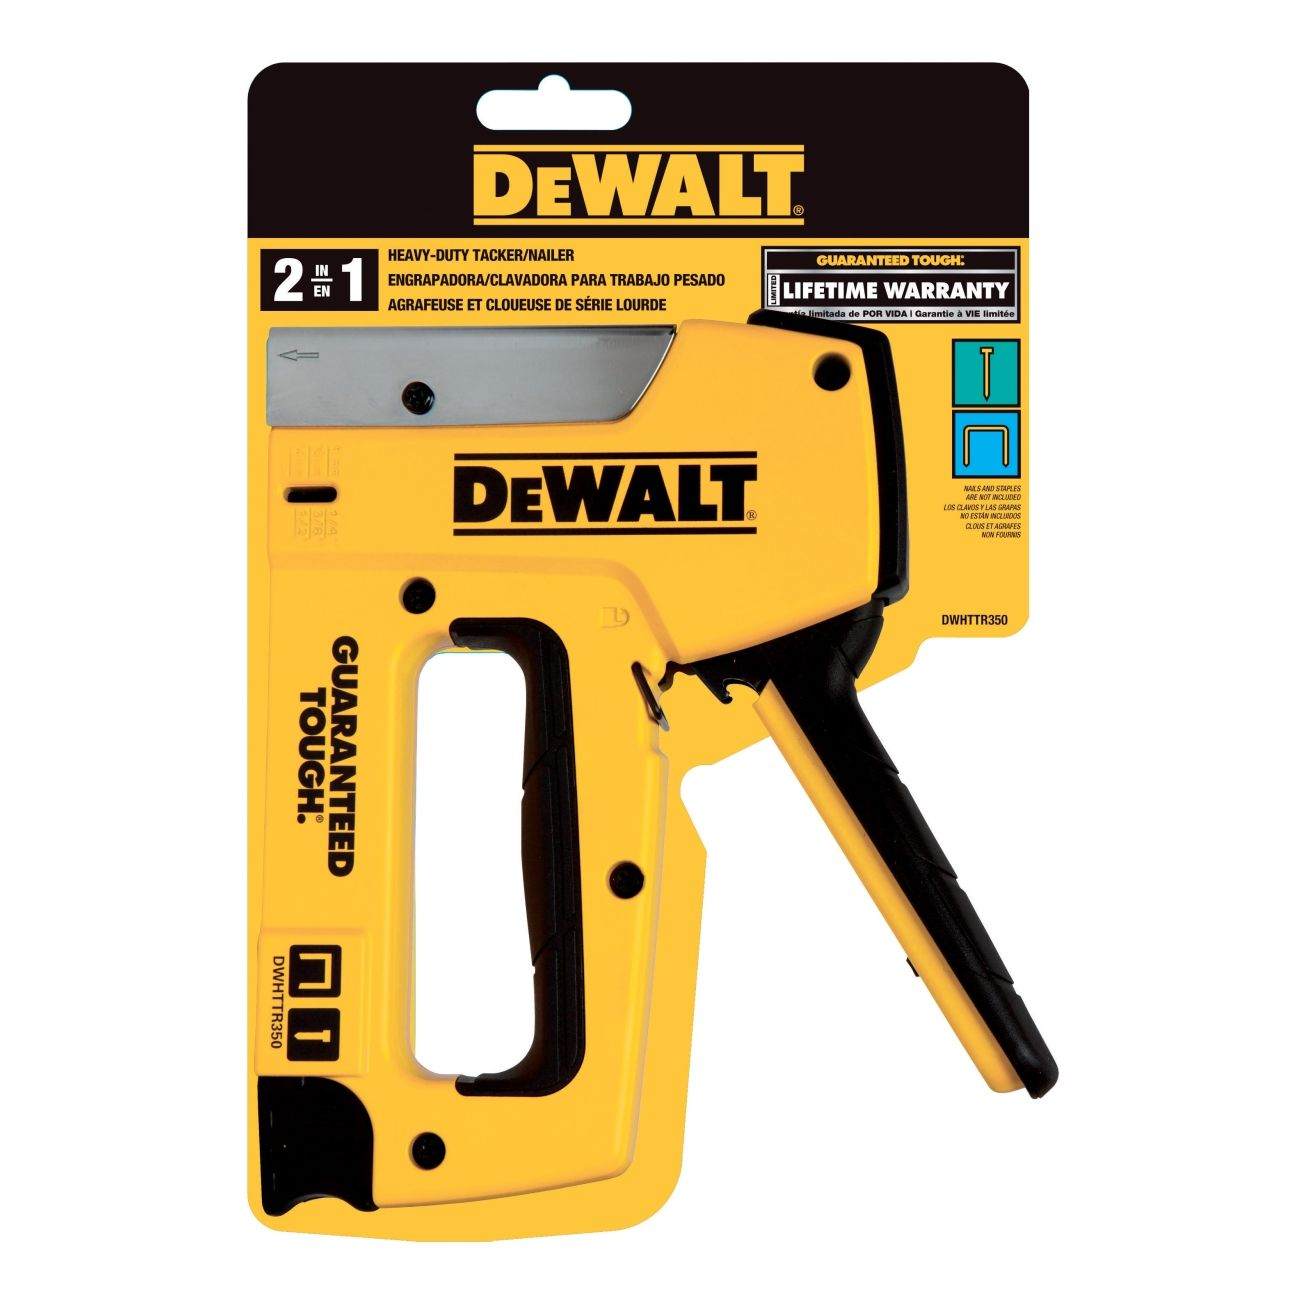 Dewalt 700 Series Aluminum Heavy Duty Staple Gun Heavy Duty ...